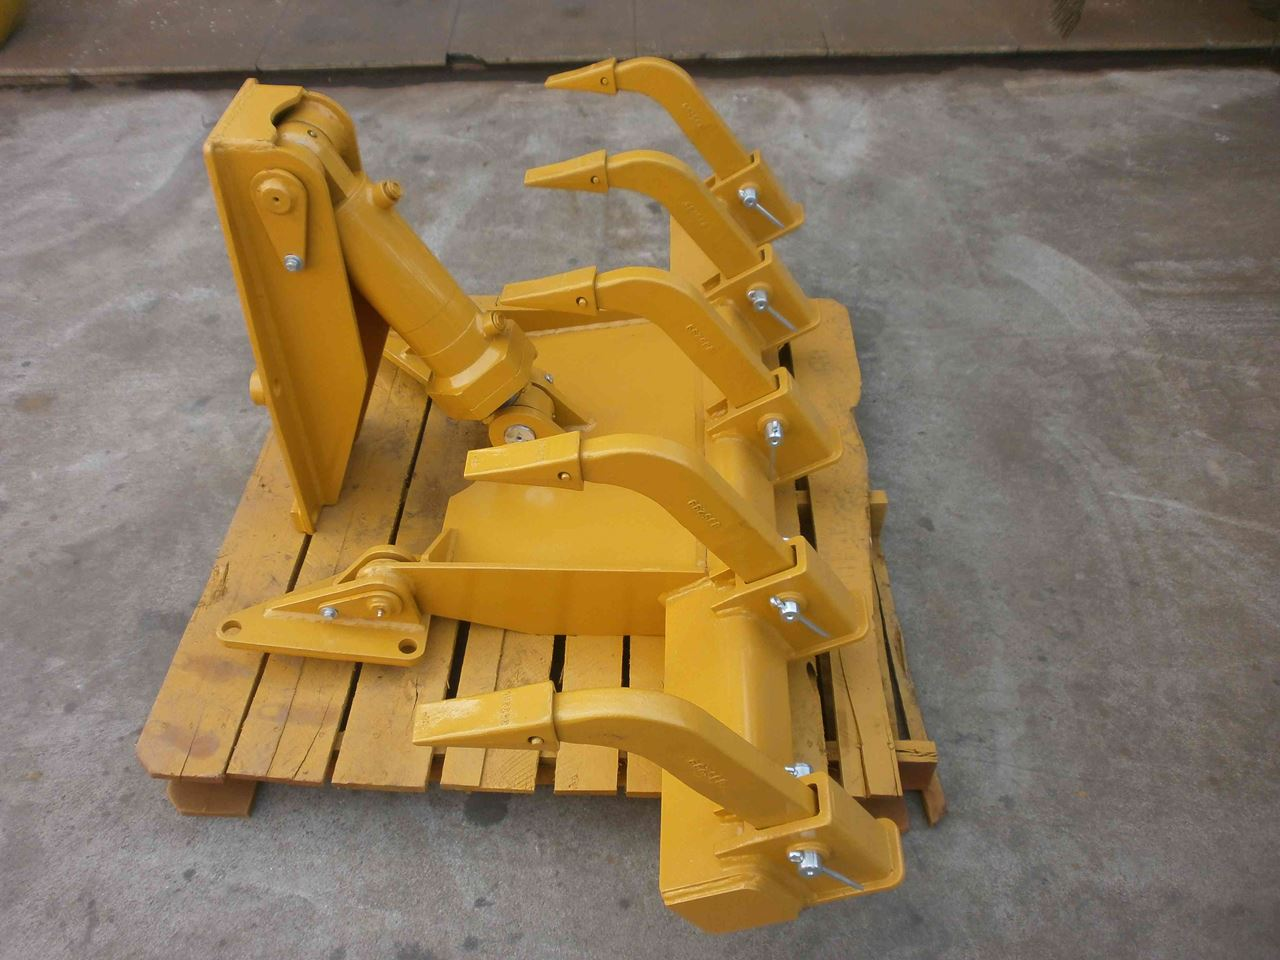 New Used Caterpillar D3c Equipment Machinery For Sale ...